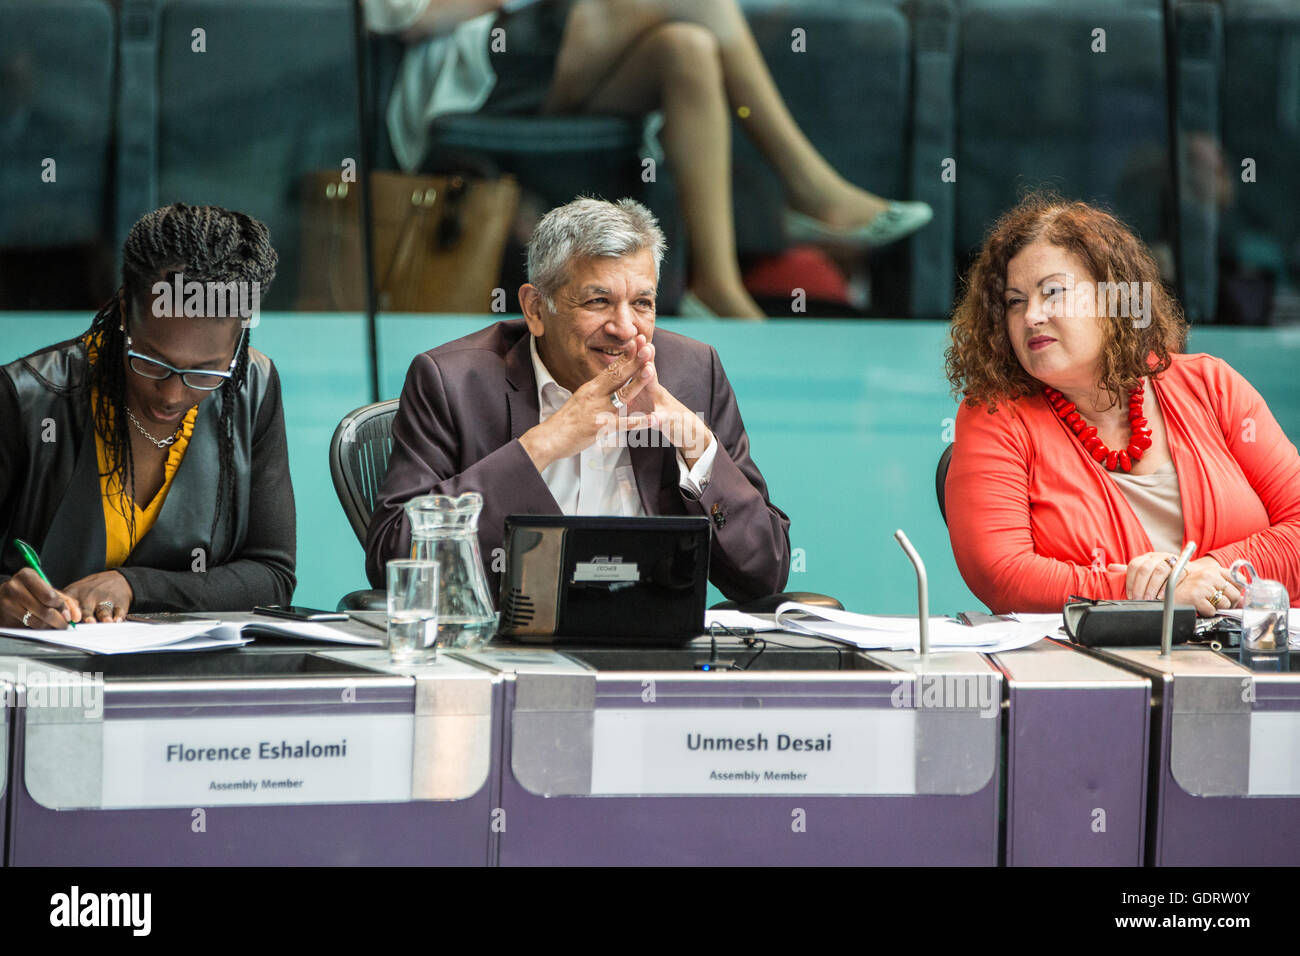 London, UK. 20th July, 2016. Labour London Assembly Members Florence Eshalomi, Unmesh Desai and Leonie Cooper at - Stock Image